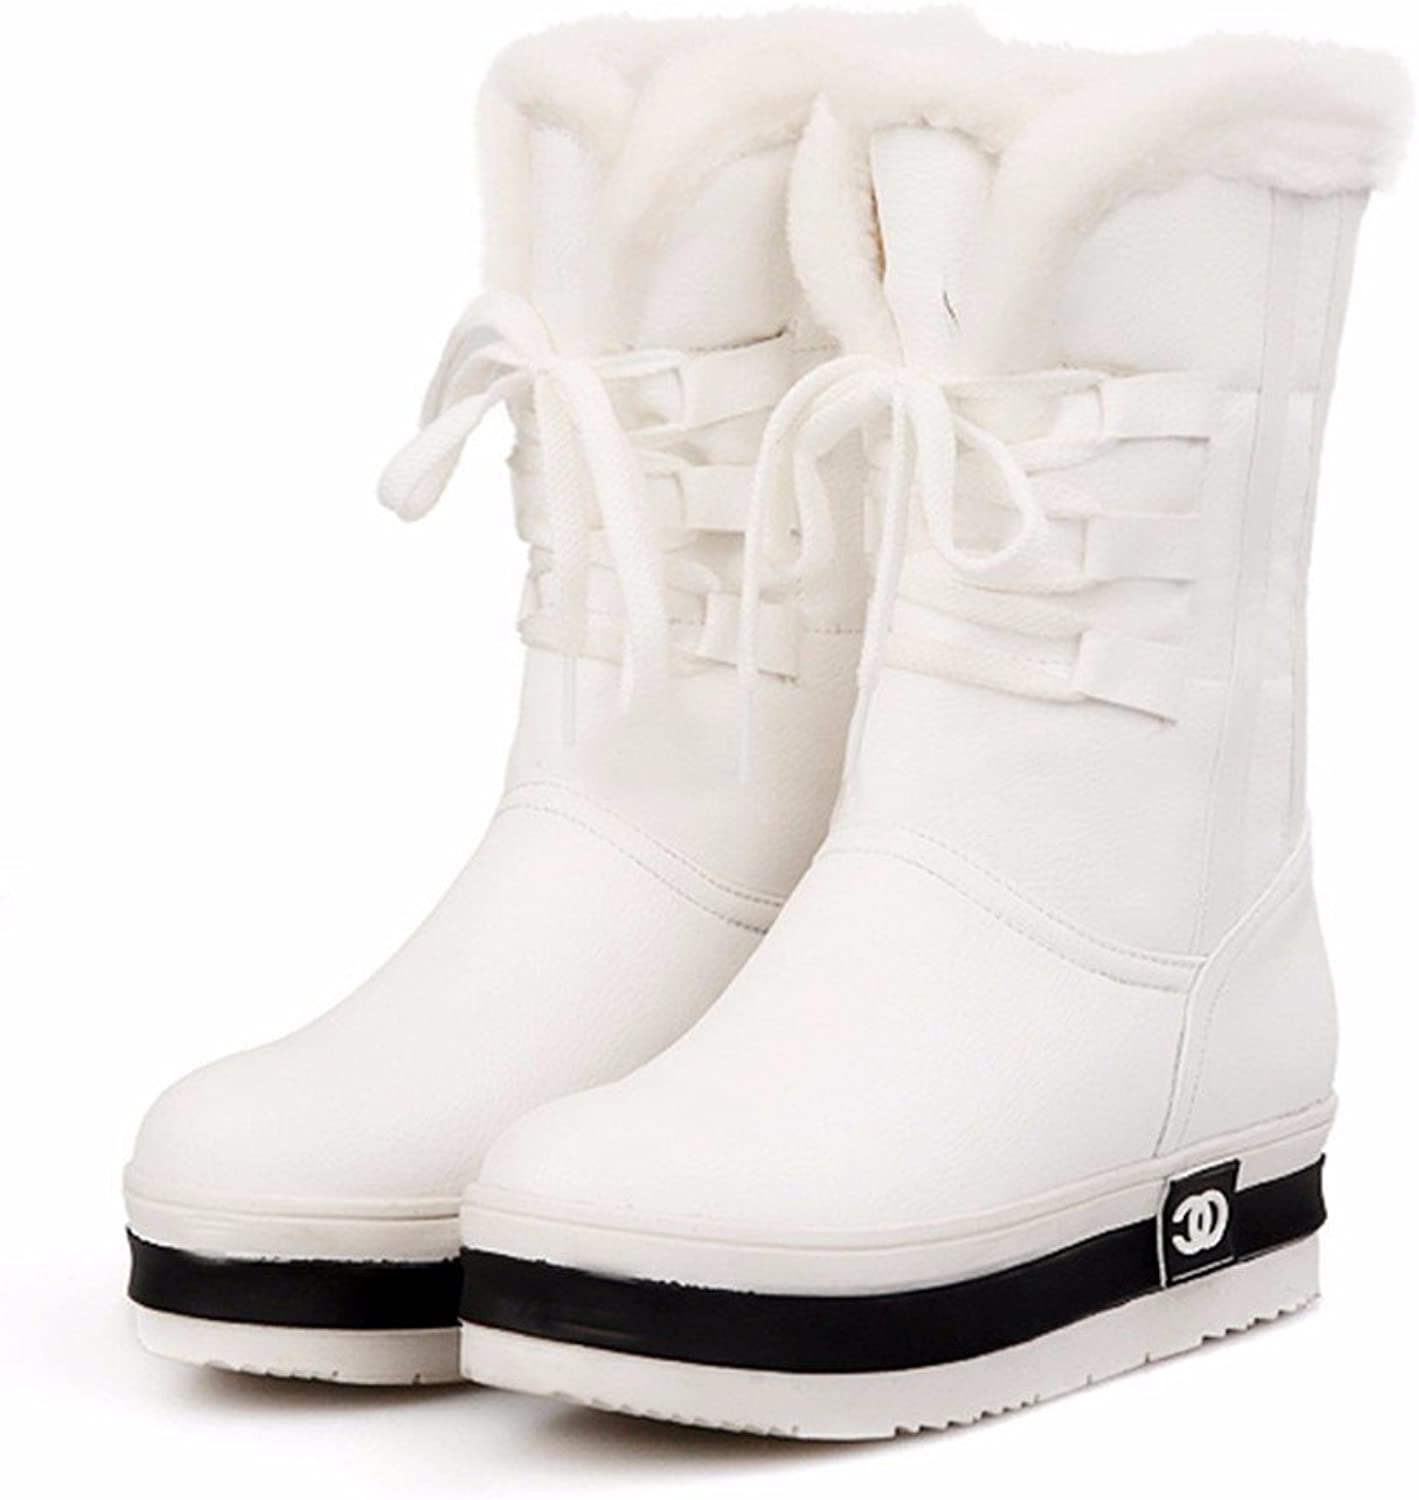 YJNB 2016 New Strap-In-Tube Platform Round The Snow Thickened Insulated Boots